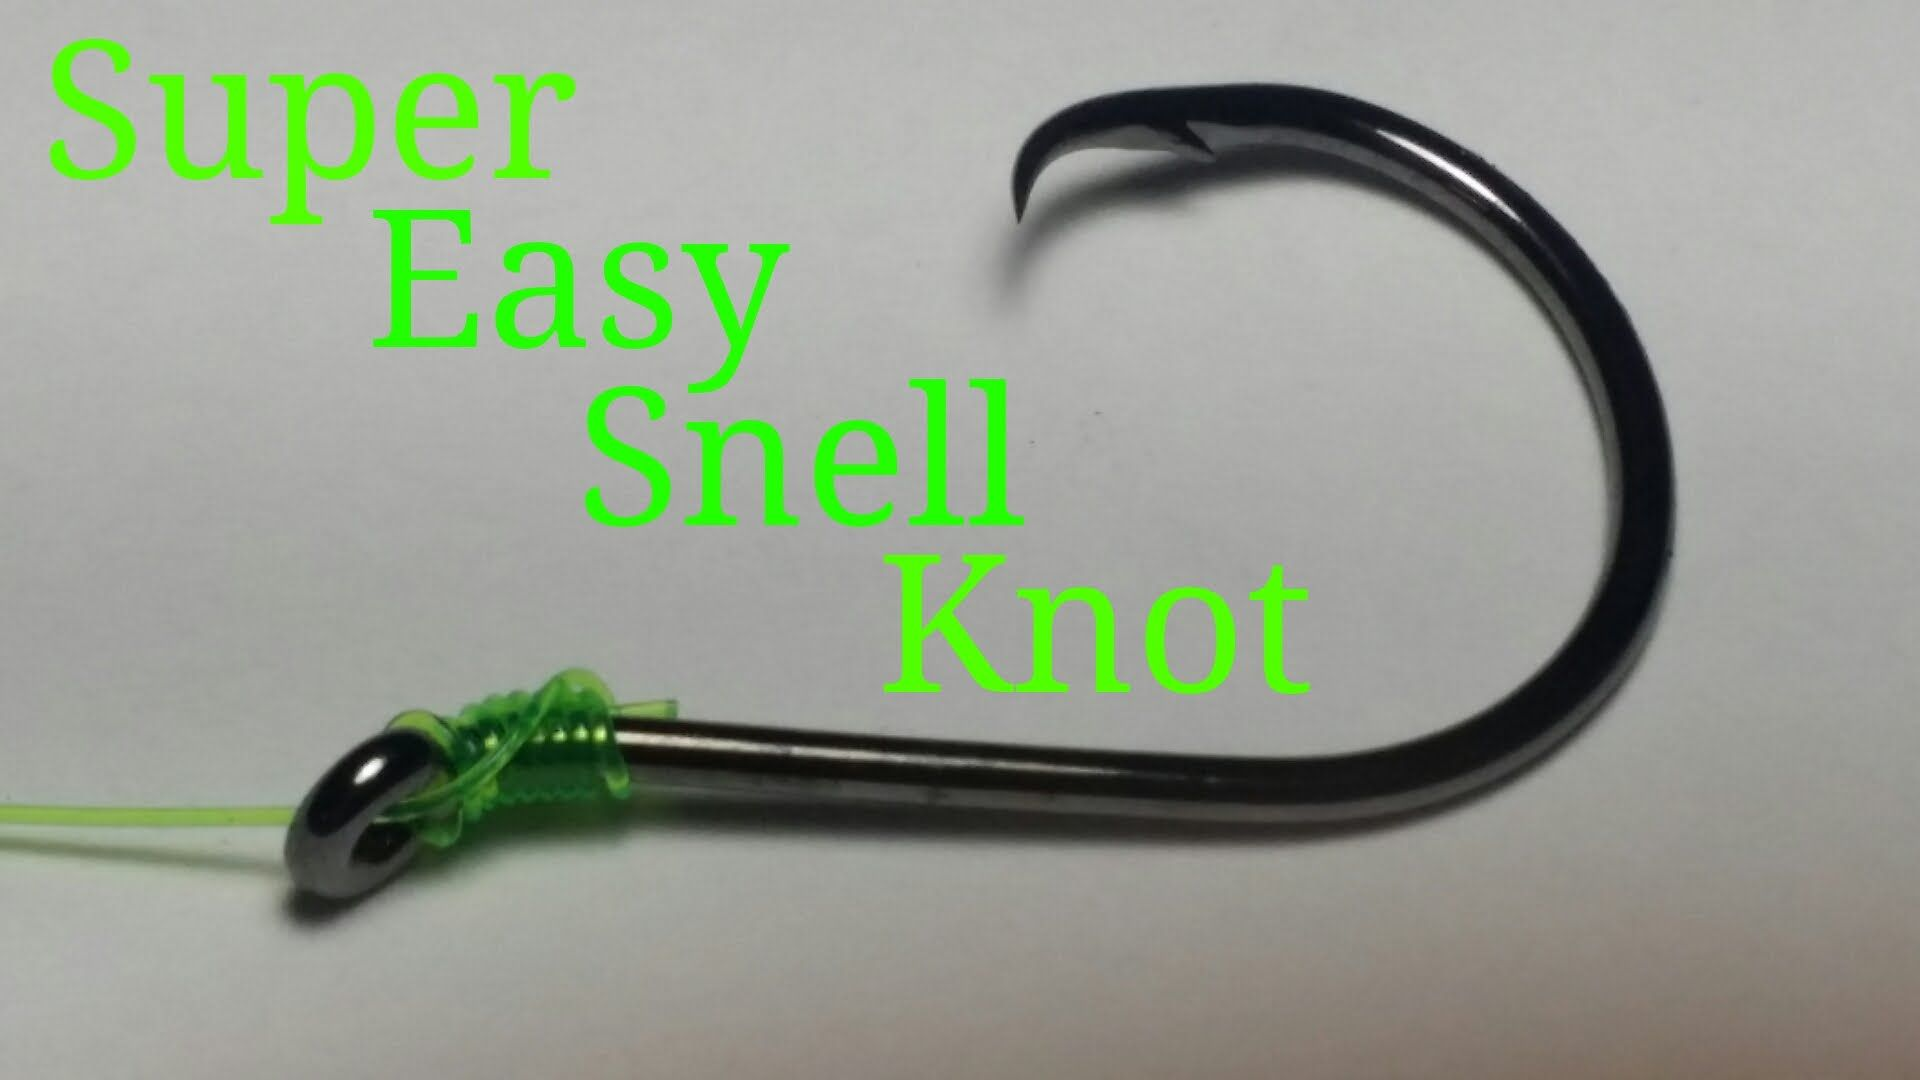 How To Tie A Super Easy Snell Knot Snell Knot Easy Fishing Knots Fishing Hook Knots